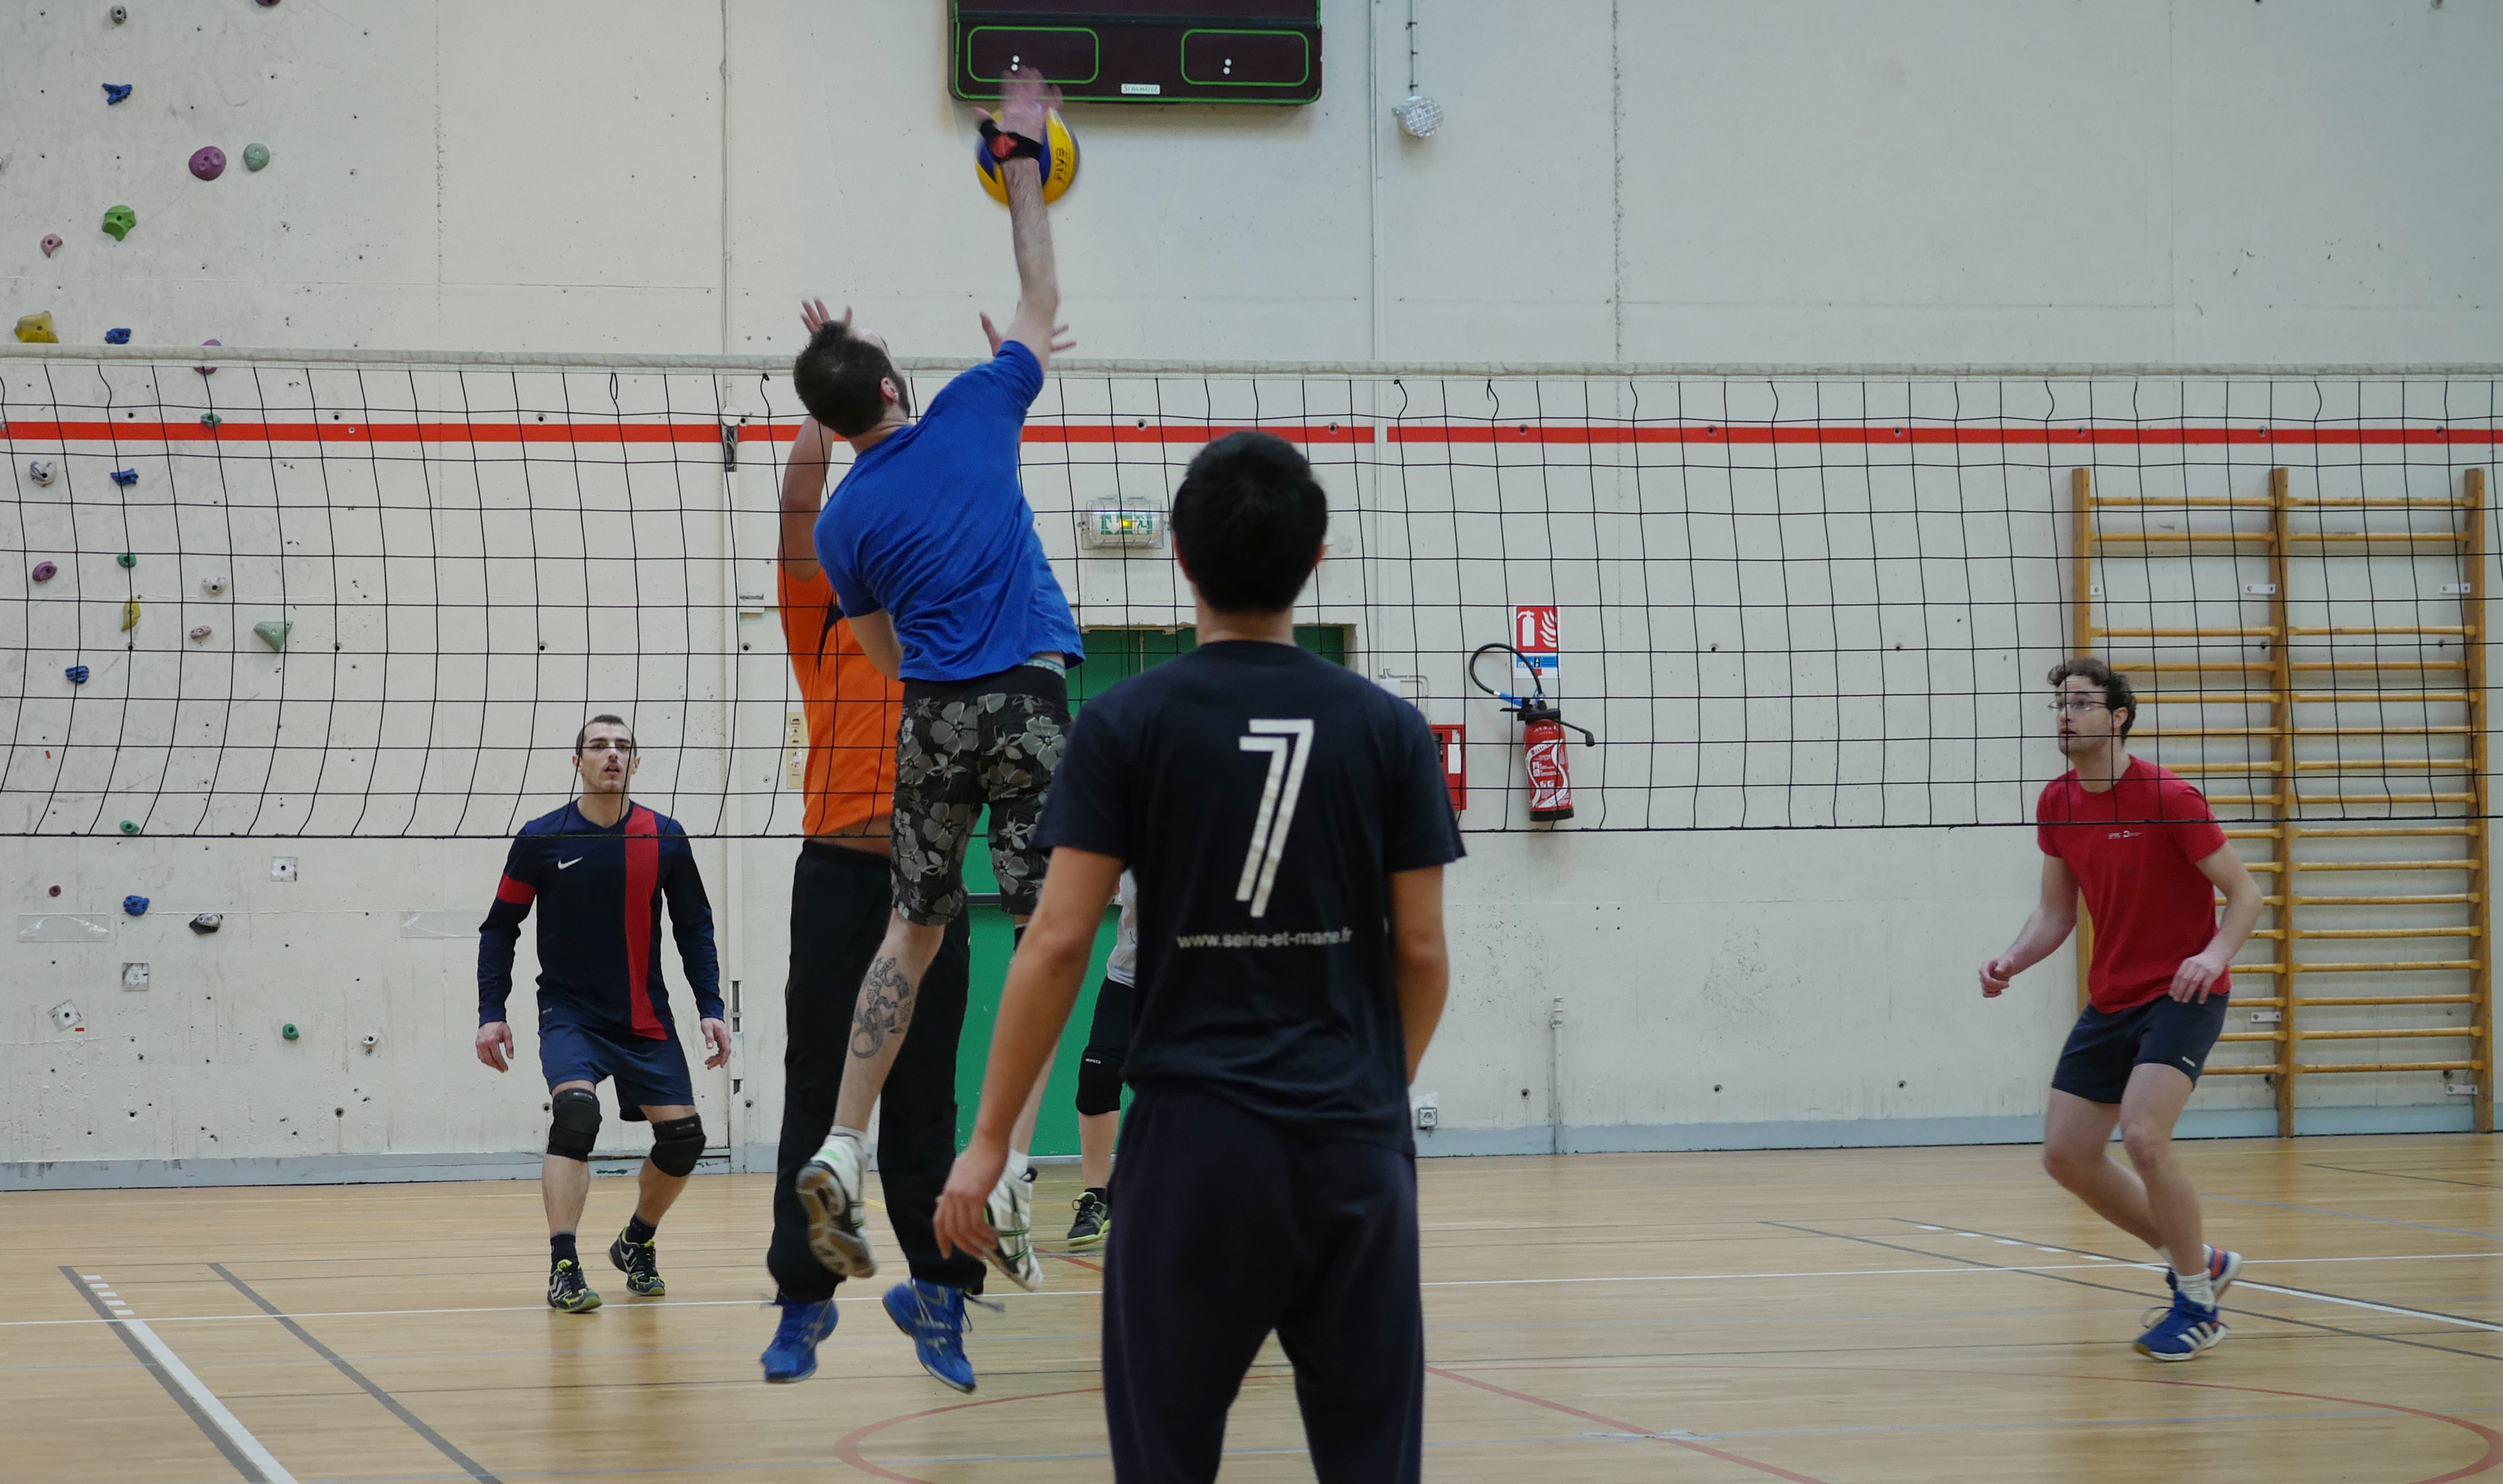 Tournoi Volley USMA 2015-50.JPG